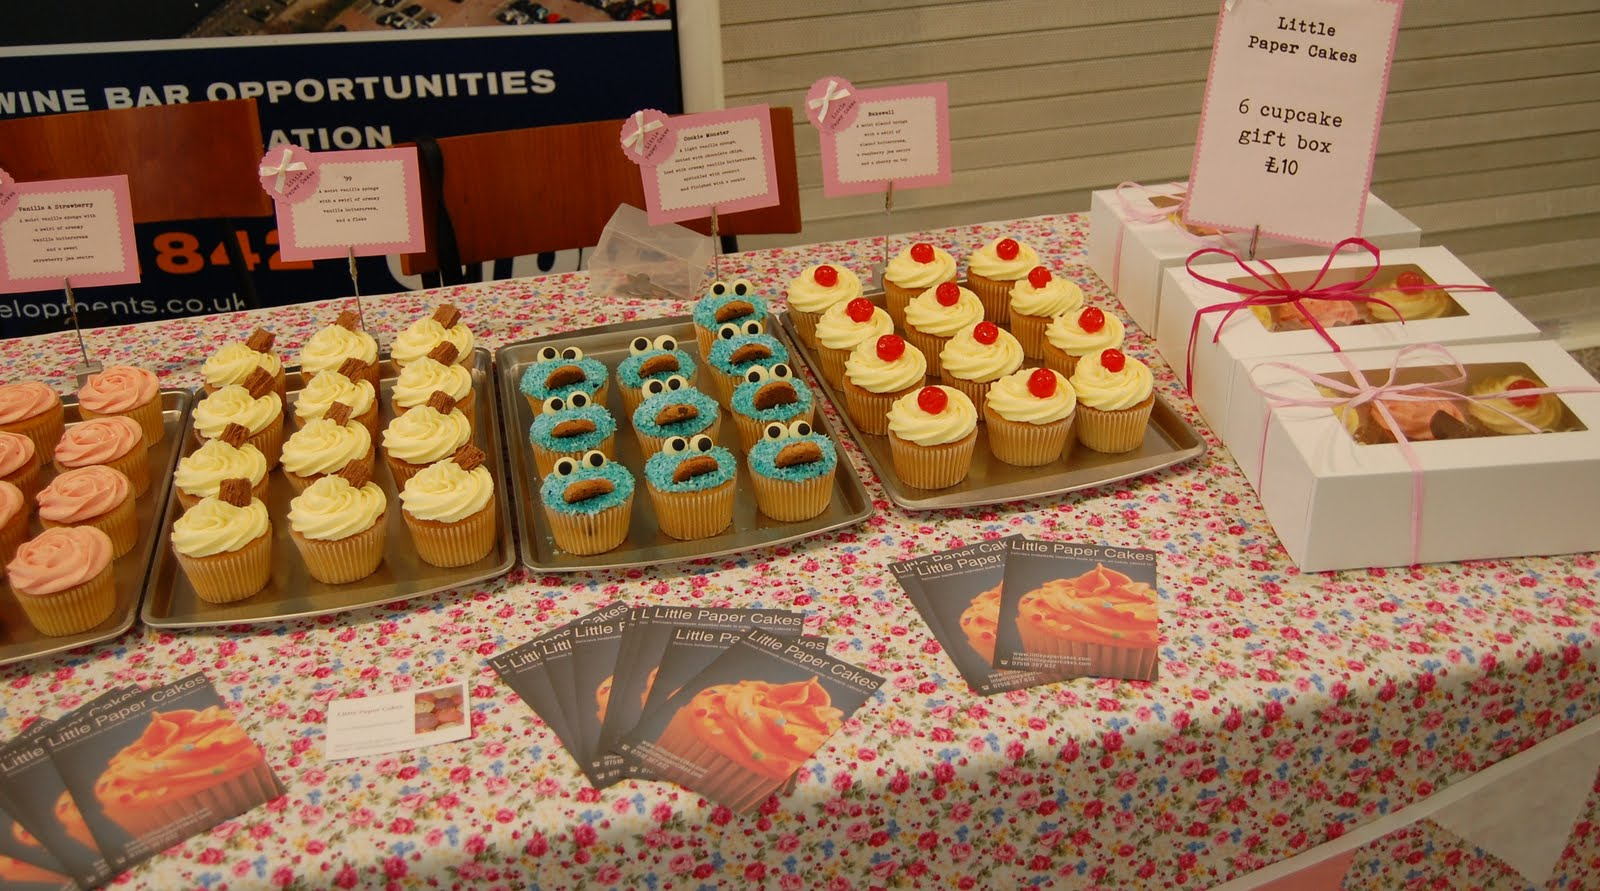 Cake Ideas For Cake Stall : Little Paper Cakes: The Lowry Outlet Mall Cupcake Stall